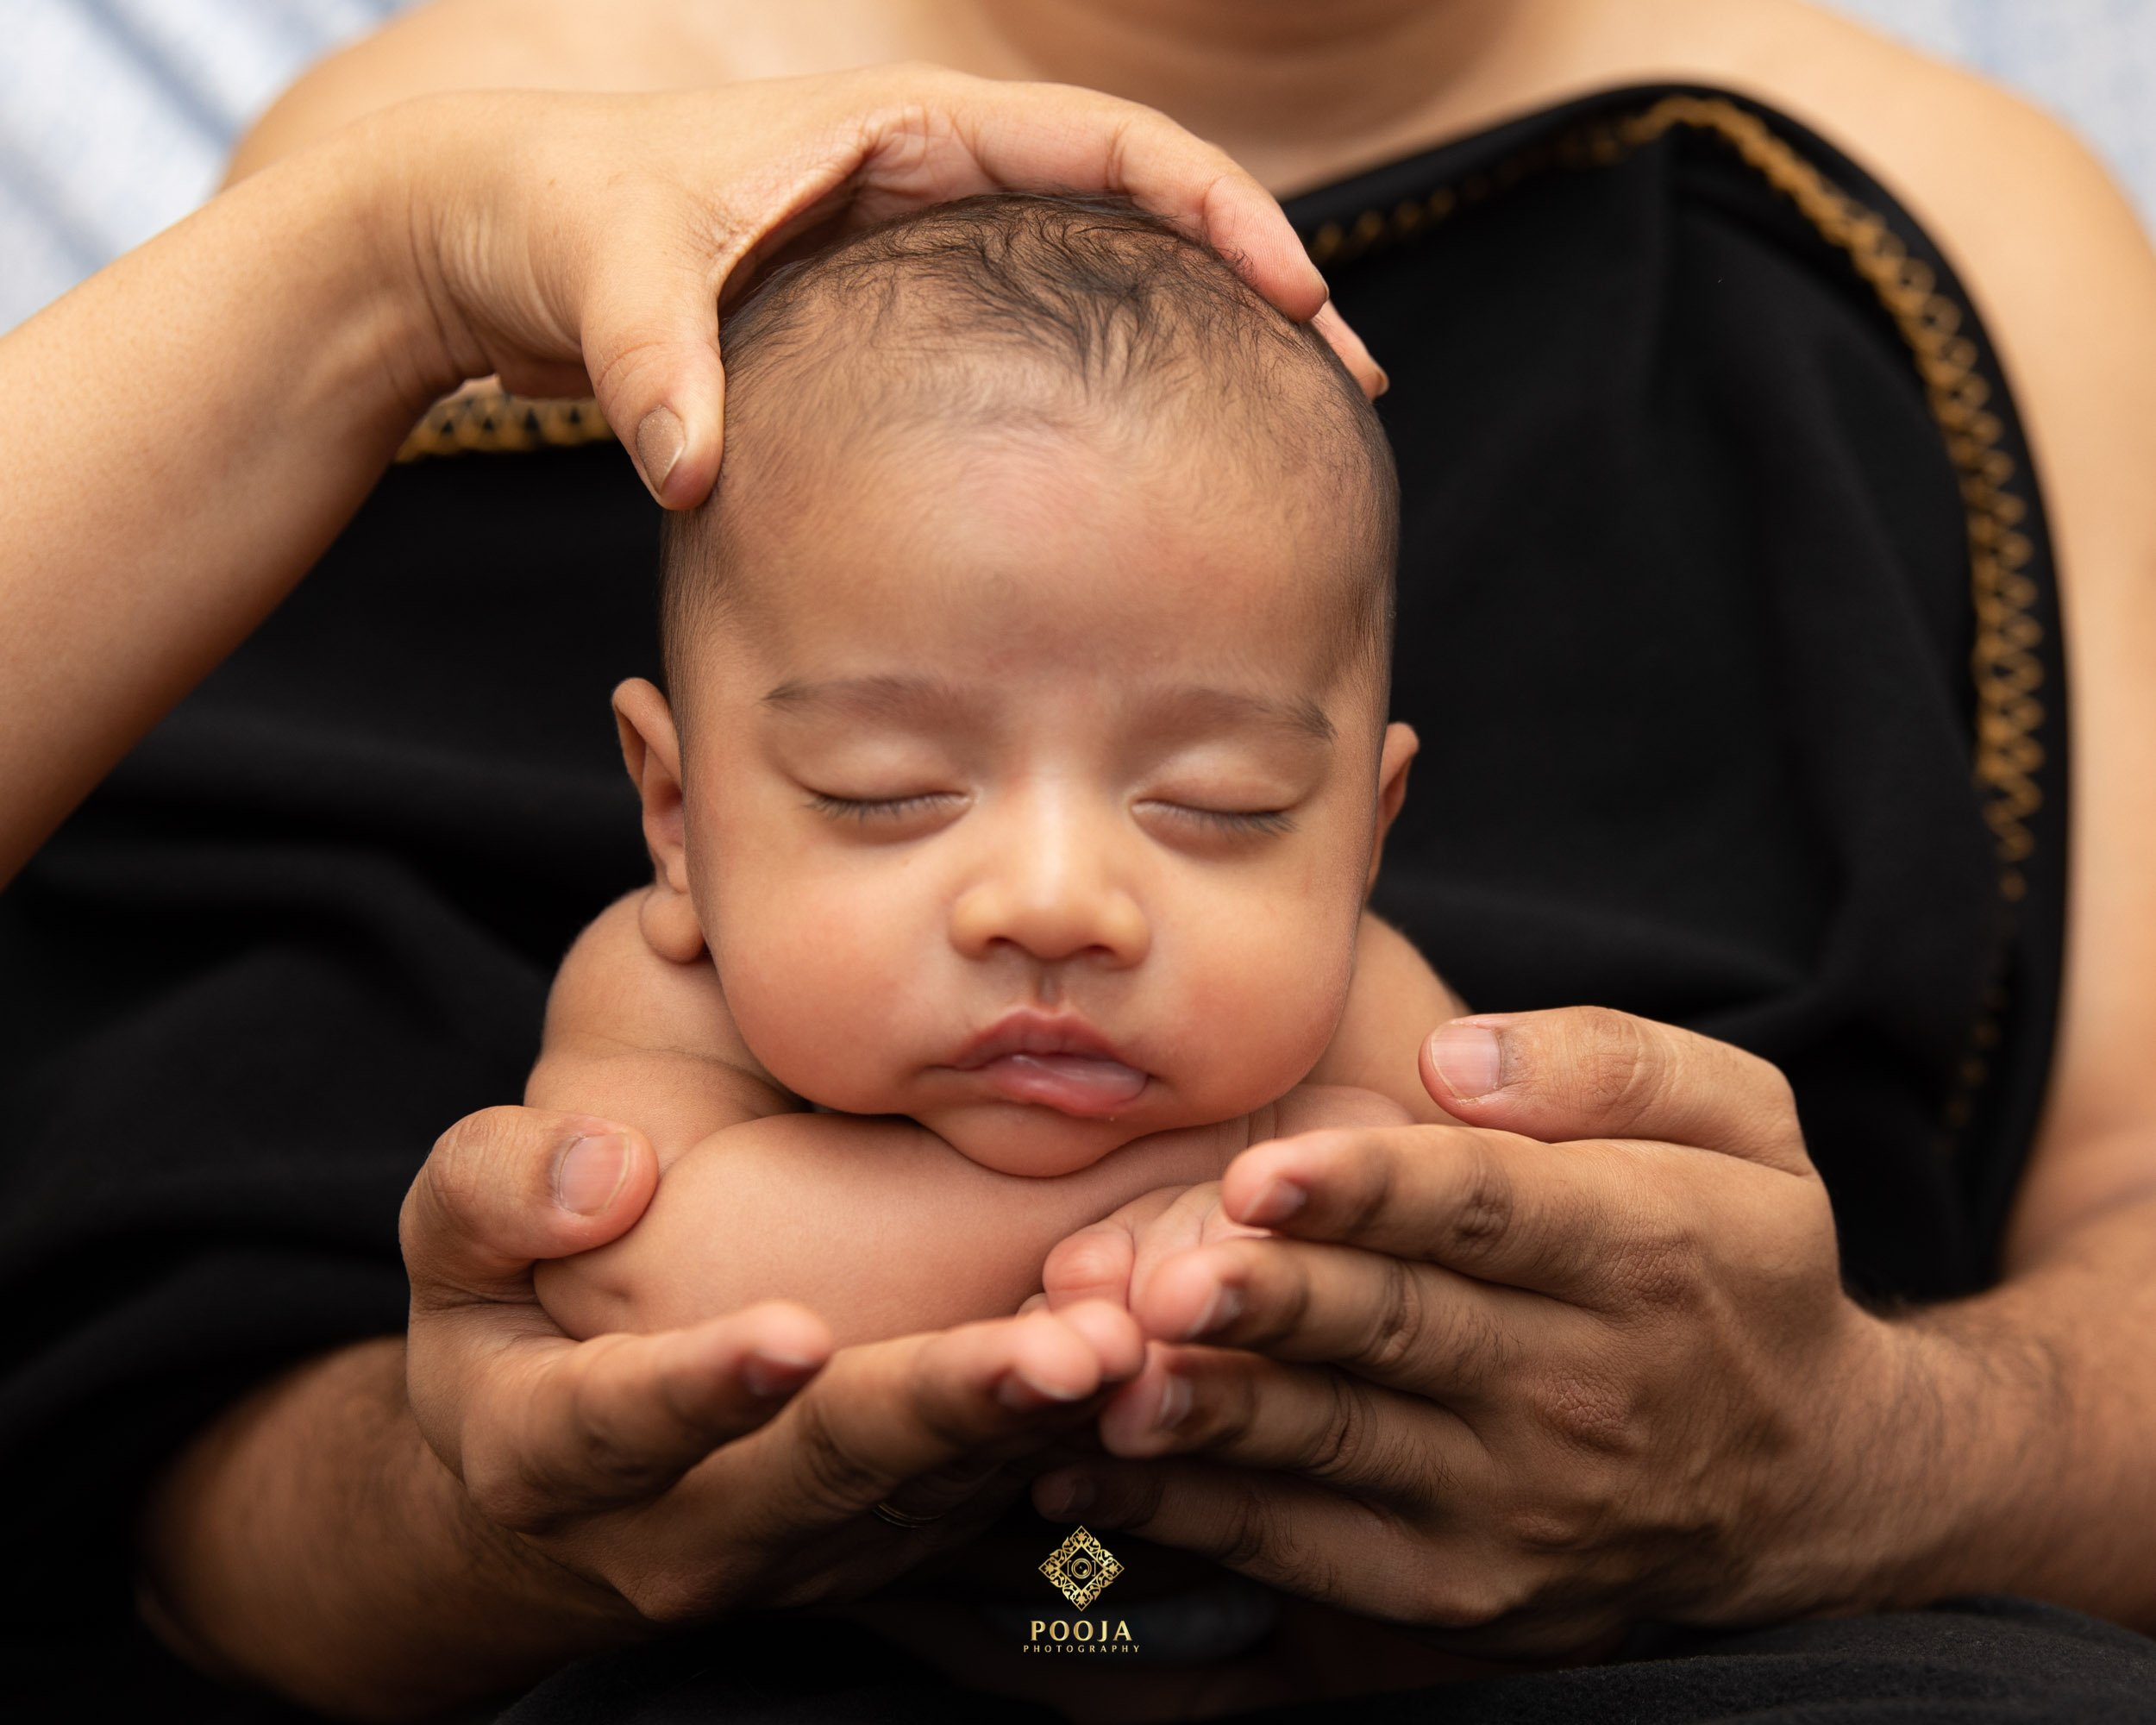 Baby Safety with newborn photography|Bay area baby photographer